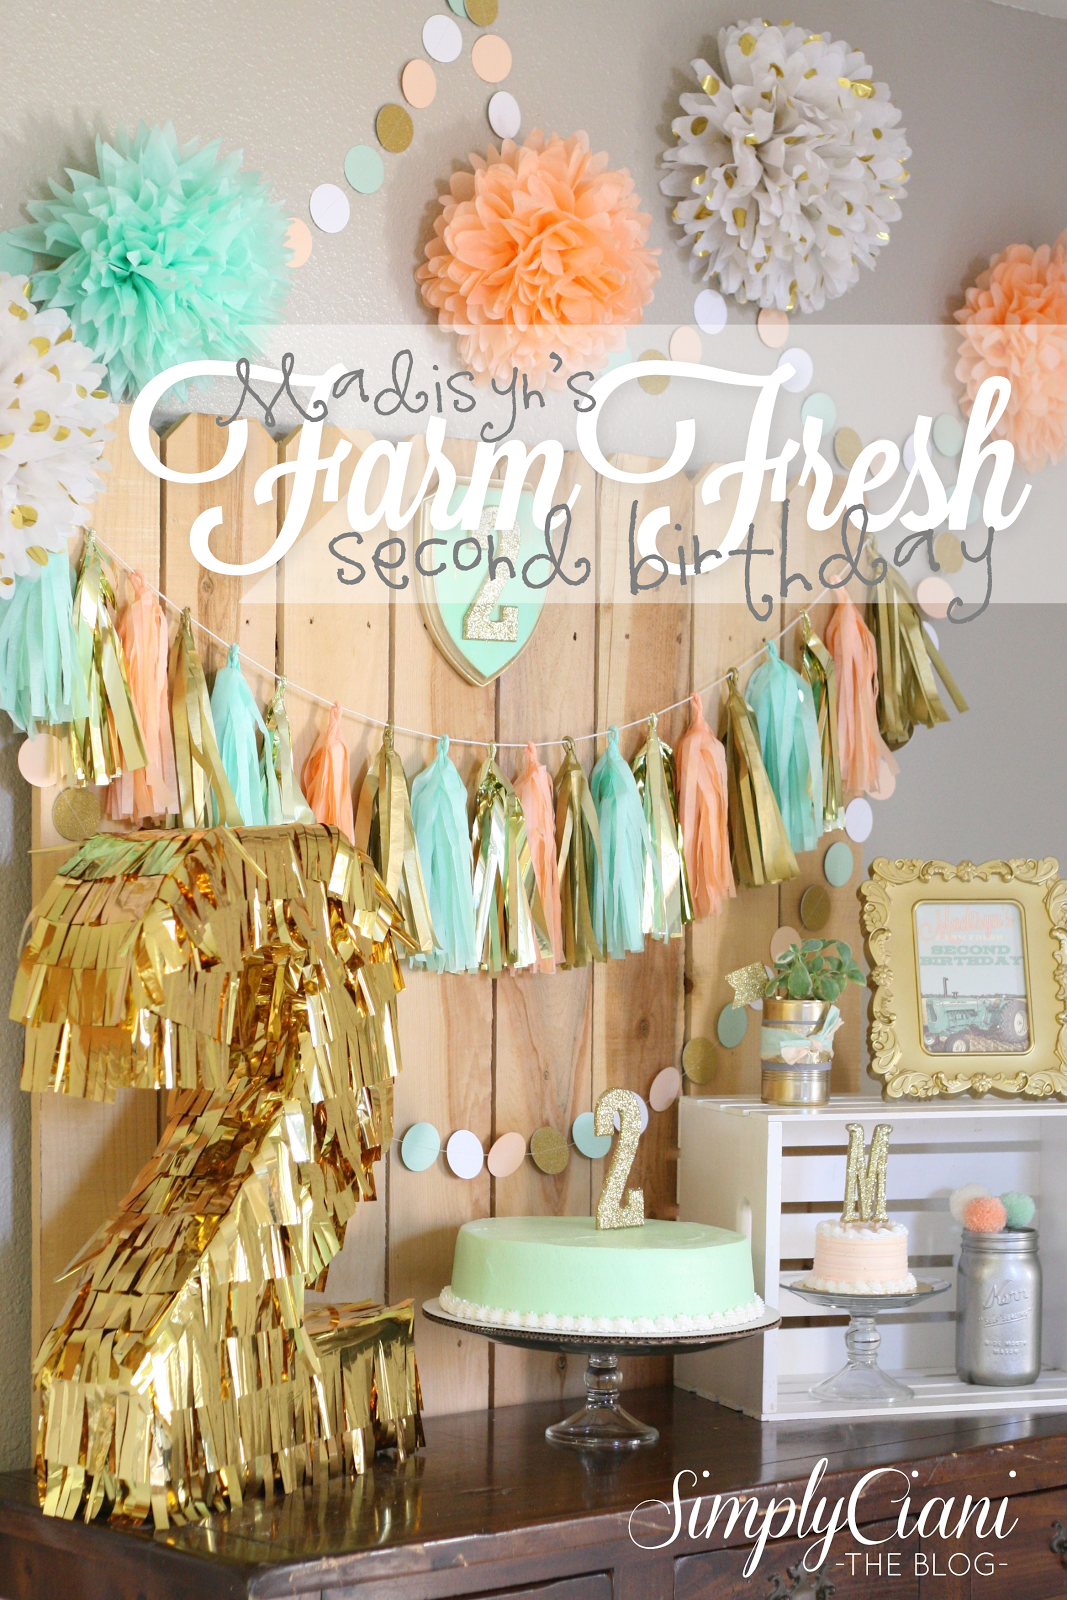 FARM FRESH 2ND BIRTHDAY Furniture Pinterest Budgeting